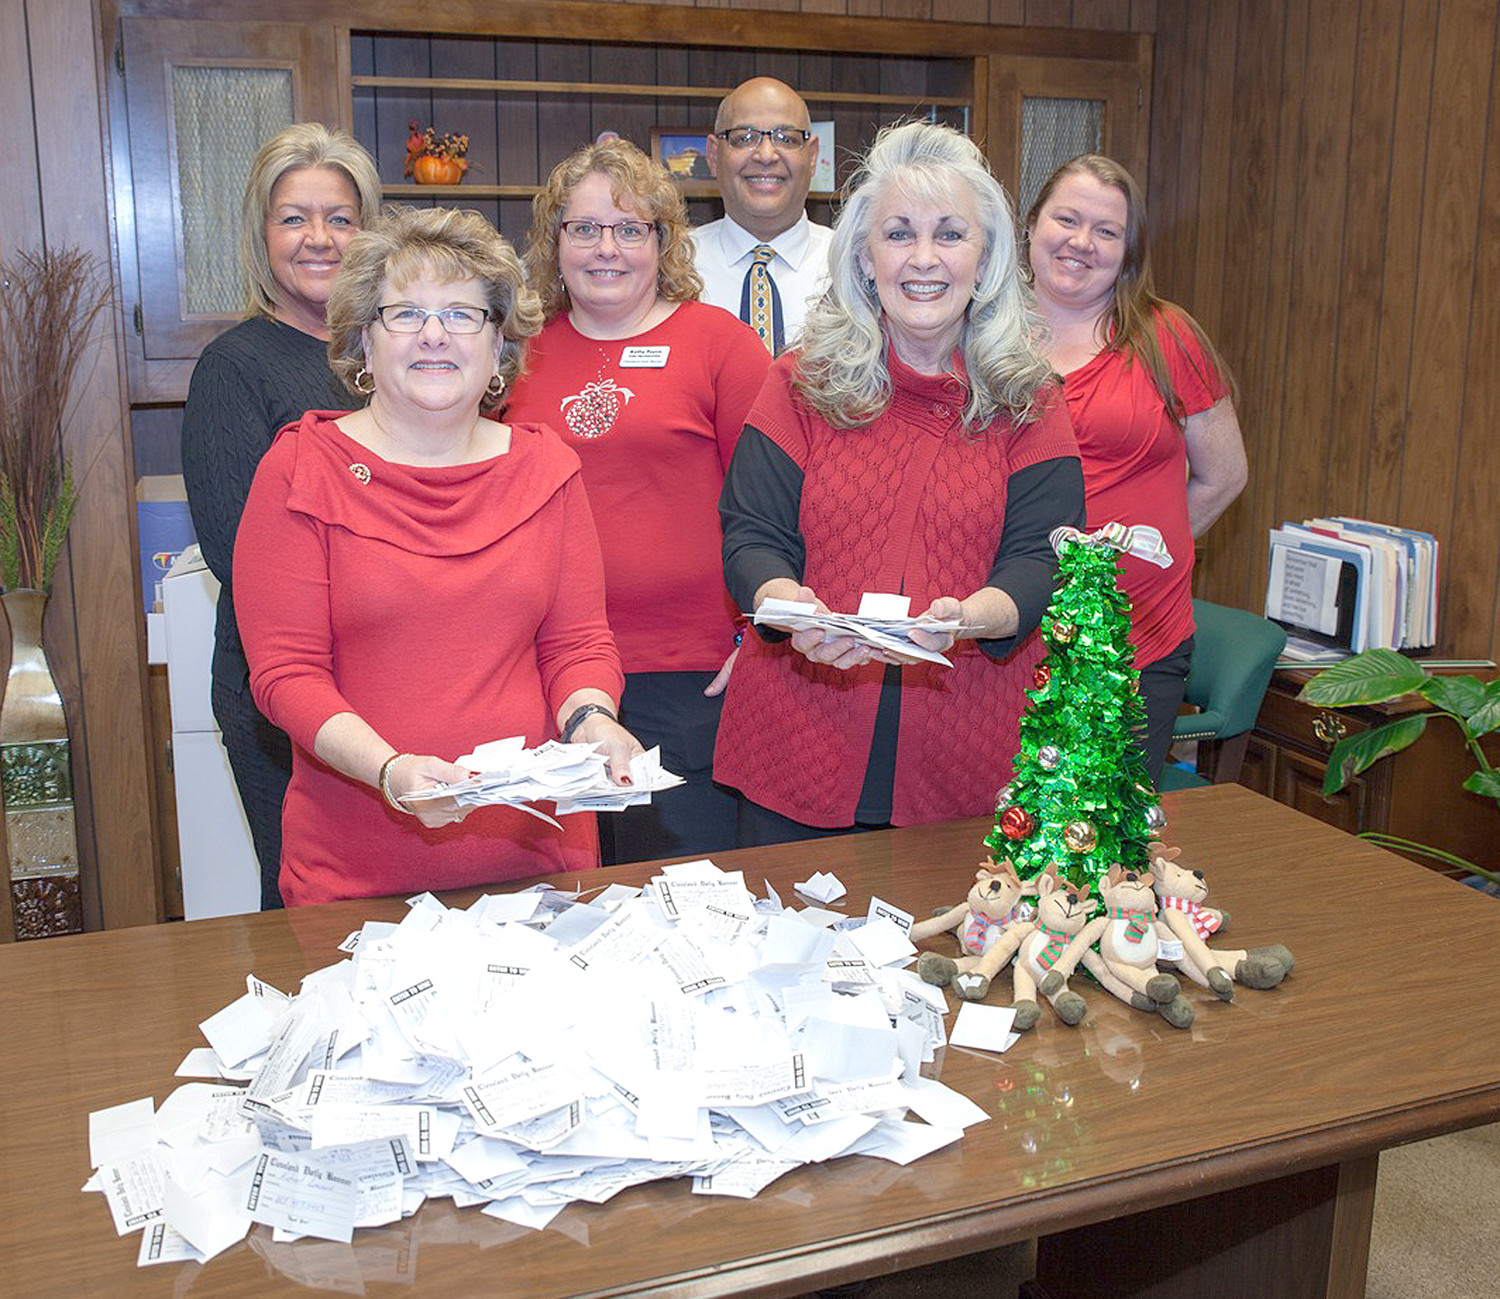 CLEVELAND DAILY BANNER sales representatives look at all the entries in the Catch the Holiday Spirit Banner Bucks promotion. From left, front, are Sheena Meyer, sales director; Kathy Payne, Leslie Callaway, back, Pam Green, Randy Moore and Tasha Beaty. The winner of the $500 in Banner Bucks was selected Wednesday.